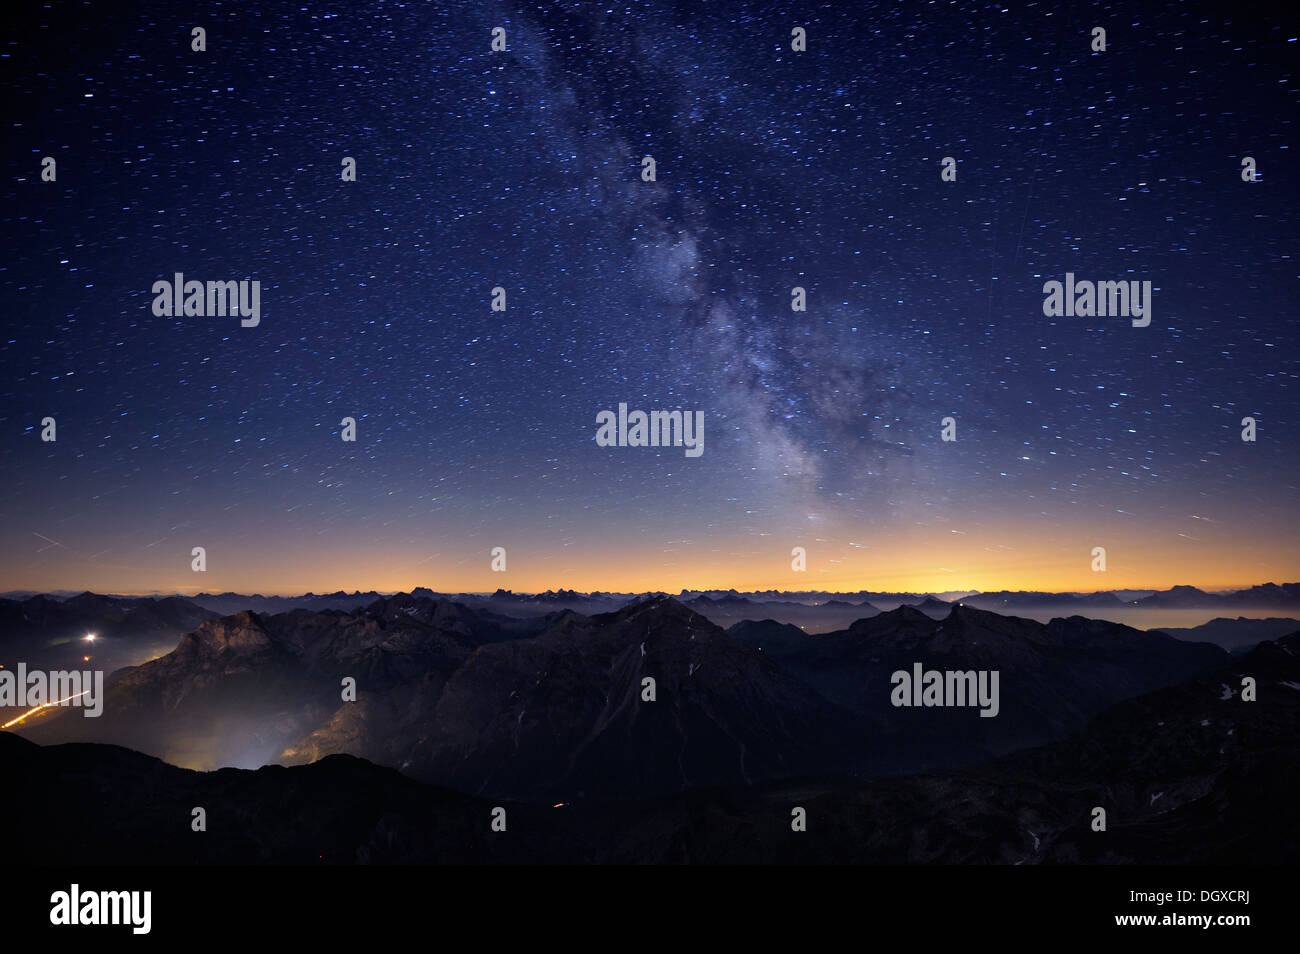 Mountains in the evening light with Milky Way and stars, Warth, Vorarlberg, Austria, Europe - Stock Image